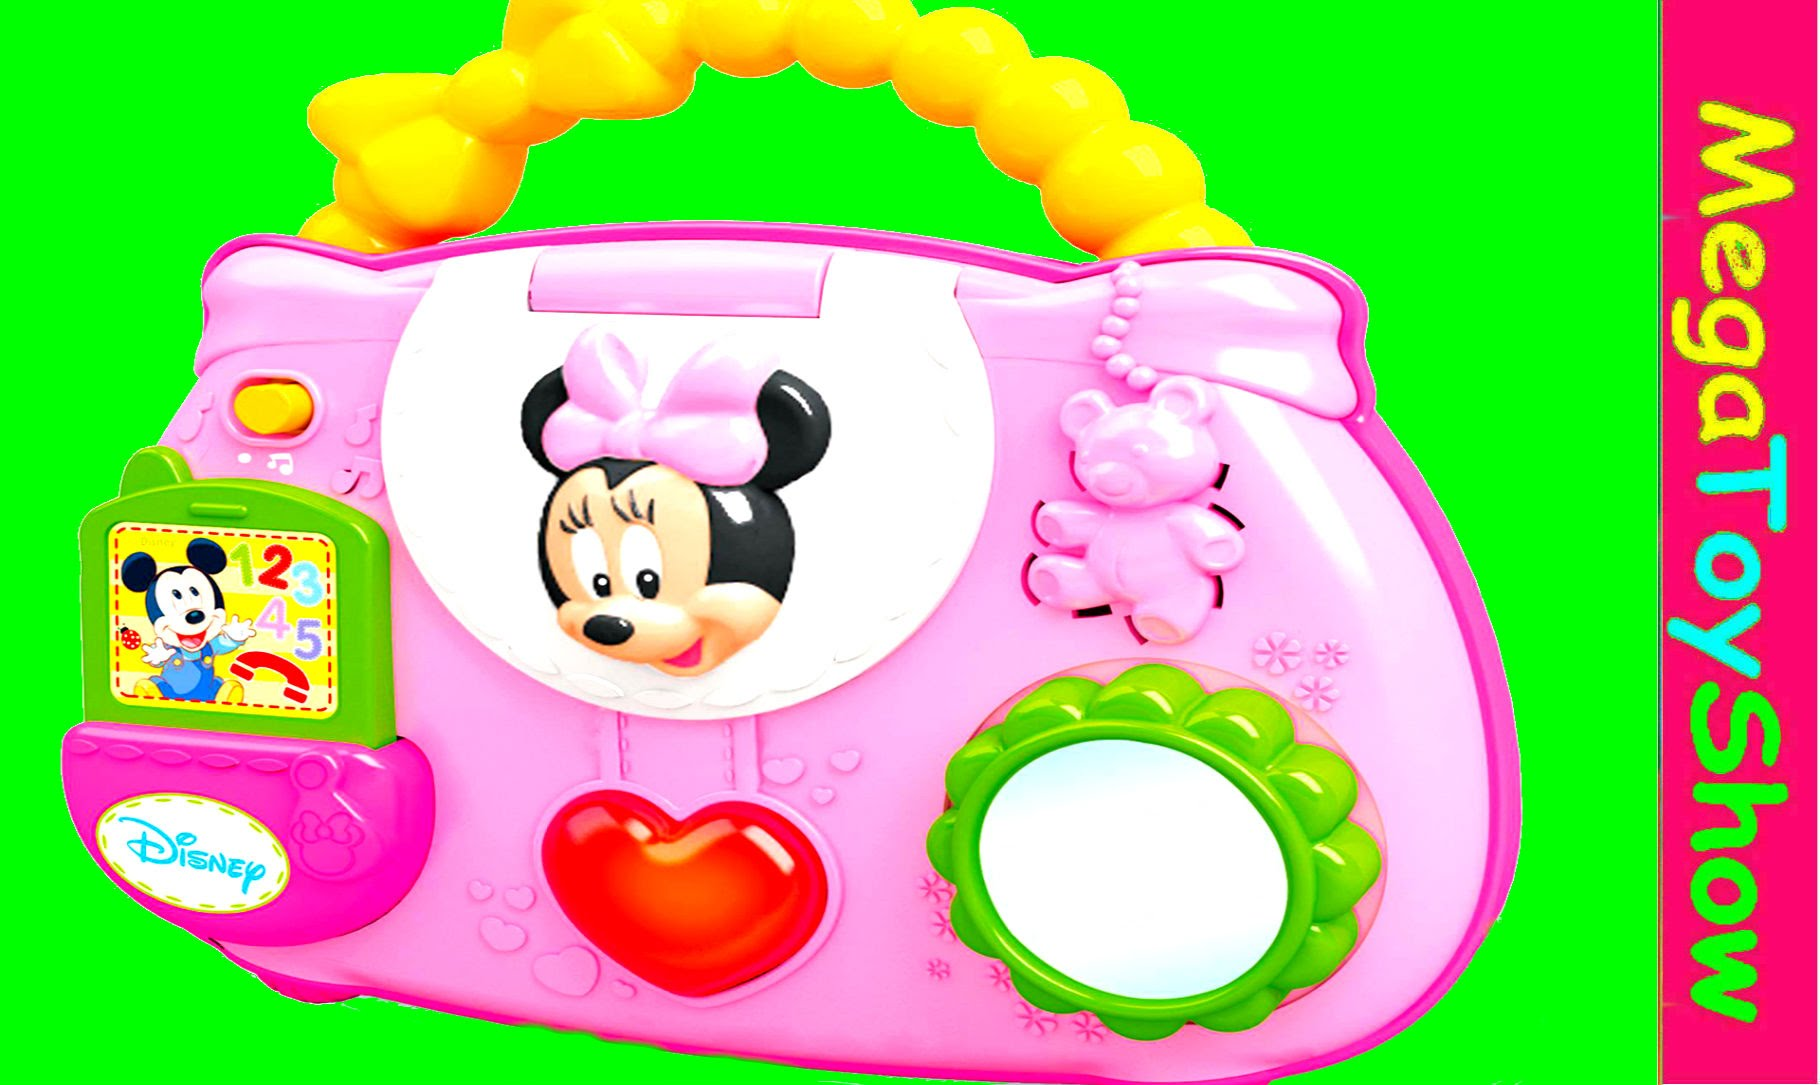 Toy clipart abcd #6